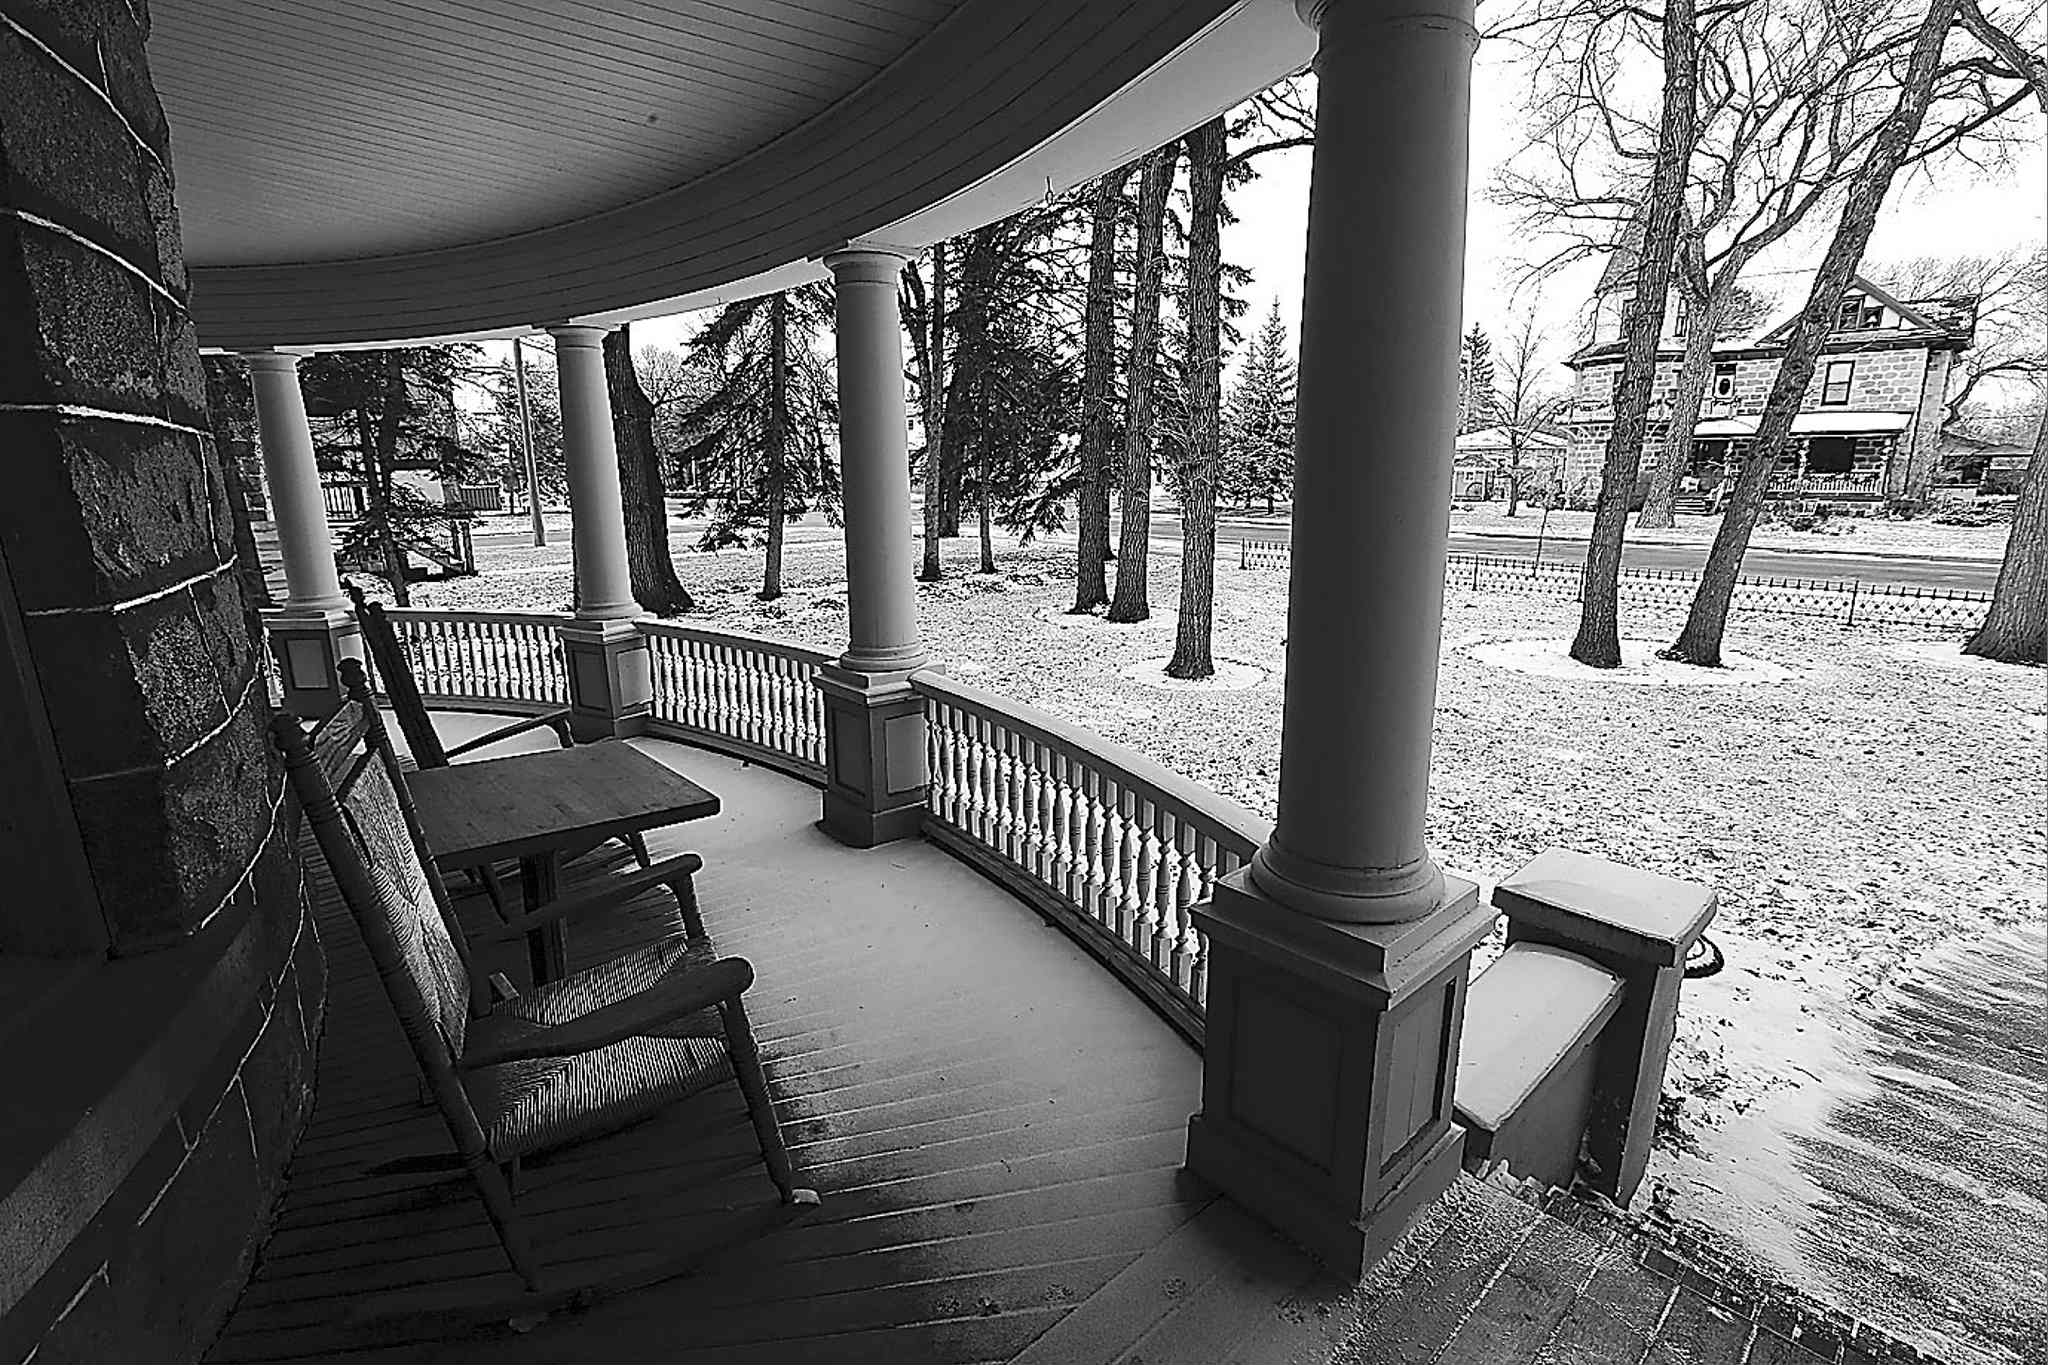 The curved front porch with a view of another historic stone house across Stephen Street. Only serious offers are being entertained.